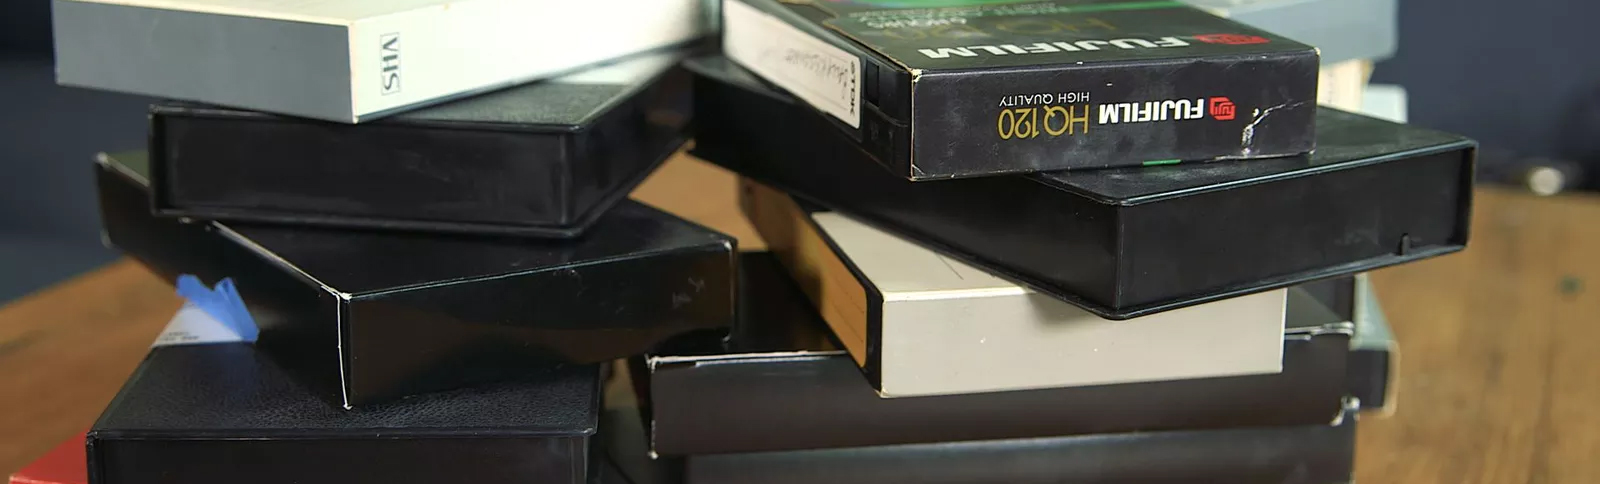 Archiving and Scanning at Banbury Chipping Norton Oxfordshire Oxford Witney Banbury Thame Swindon Didcot Wantage Berkshire Newbury Reading Slough Bracknell Buckinghamshire Buckinham Milton Keynes Bedford Bedfordshire Luton Duplication Centre Banbury Chipping Norton Oxfordshire Oxford Witney Banbury Thame Swindon Didcot Wantage Berkshire Newbury Reading Slough Bracknell Buckinghamshire Buckinham Milton Keynes Bedford Bedfordshire Lutonshire UK